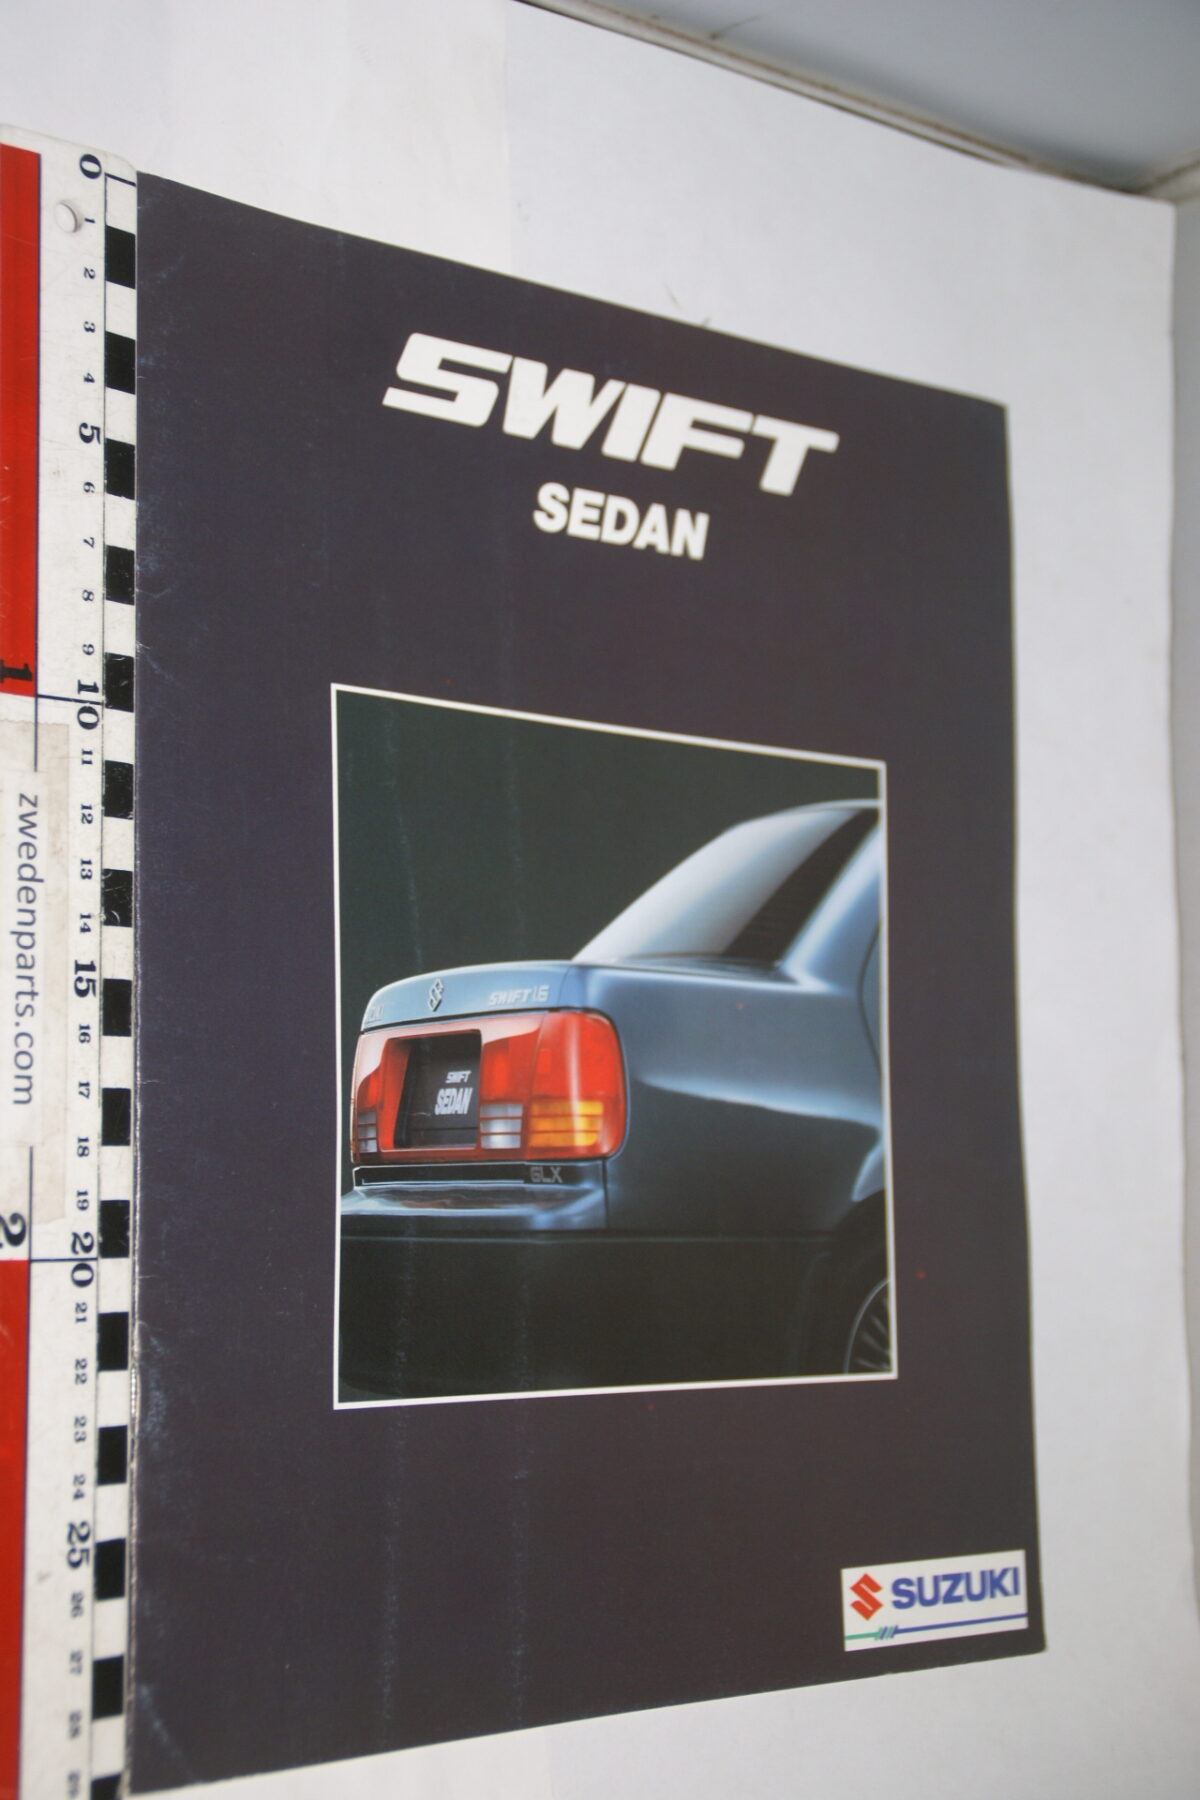 DSC08403 originele brochure Suzuki Swift sedan-1a911a8f